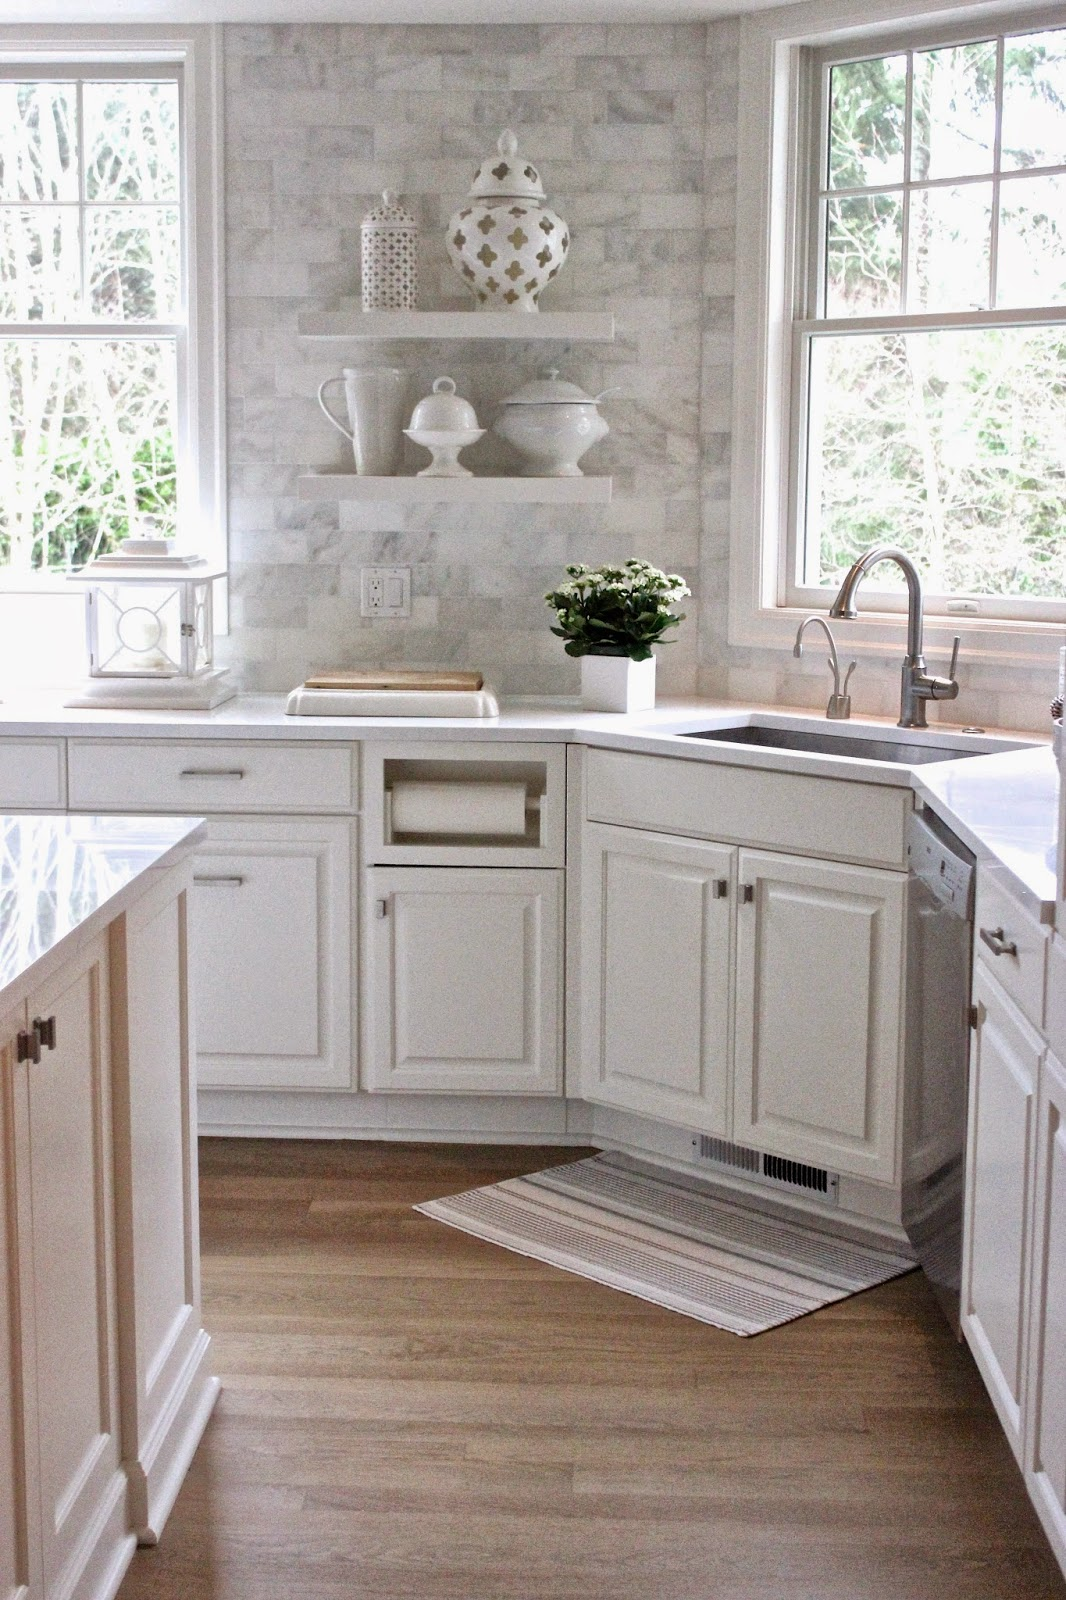 the countertops are white quartz and the backsplash